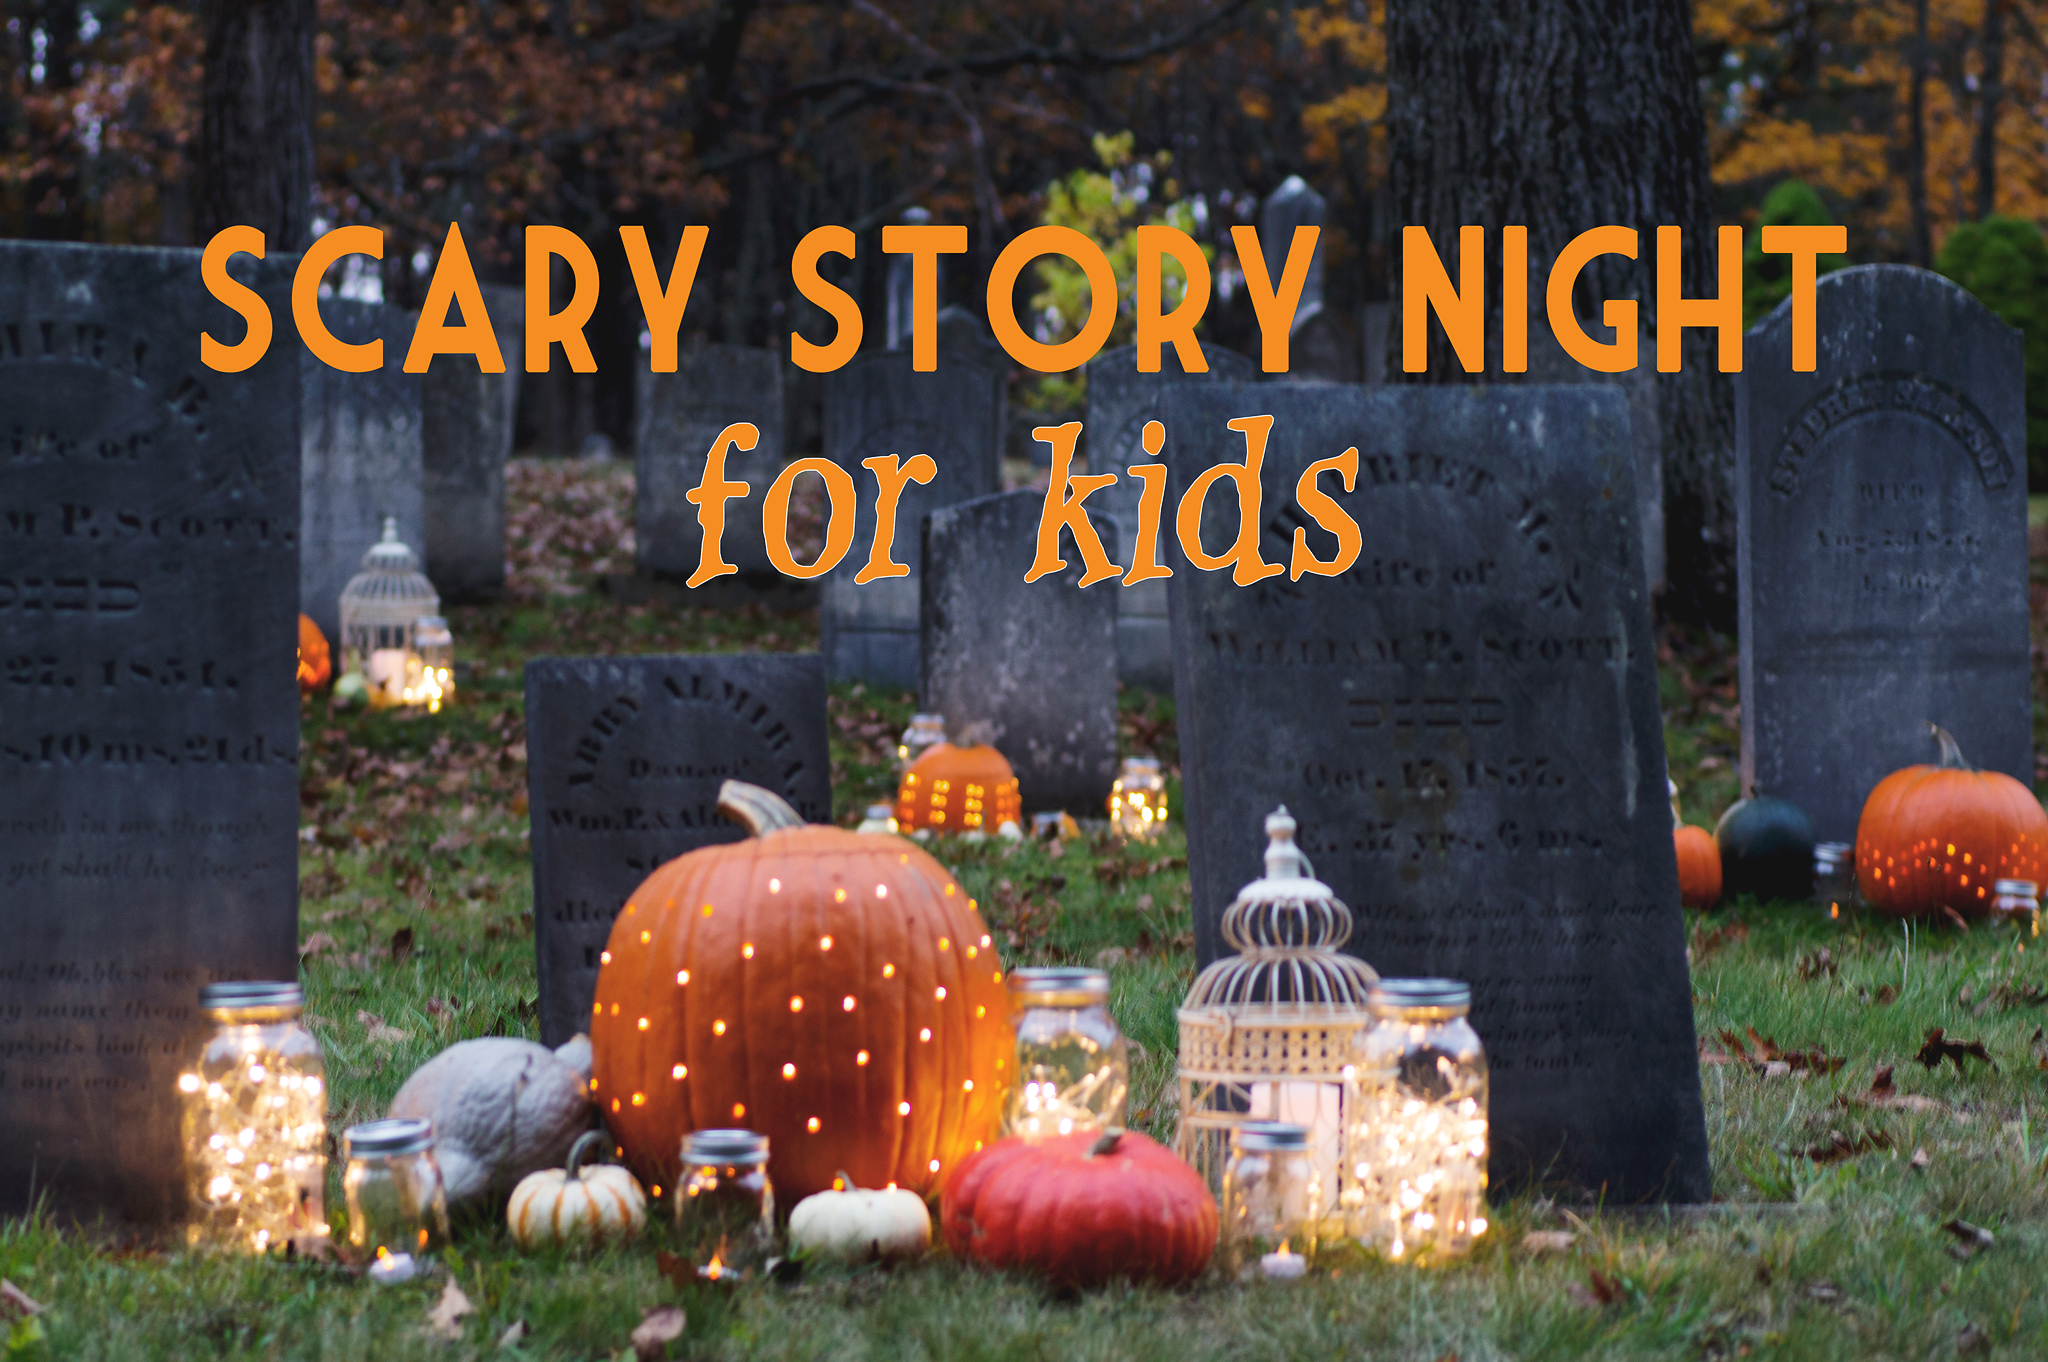 Scary Story Night for Kids